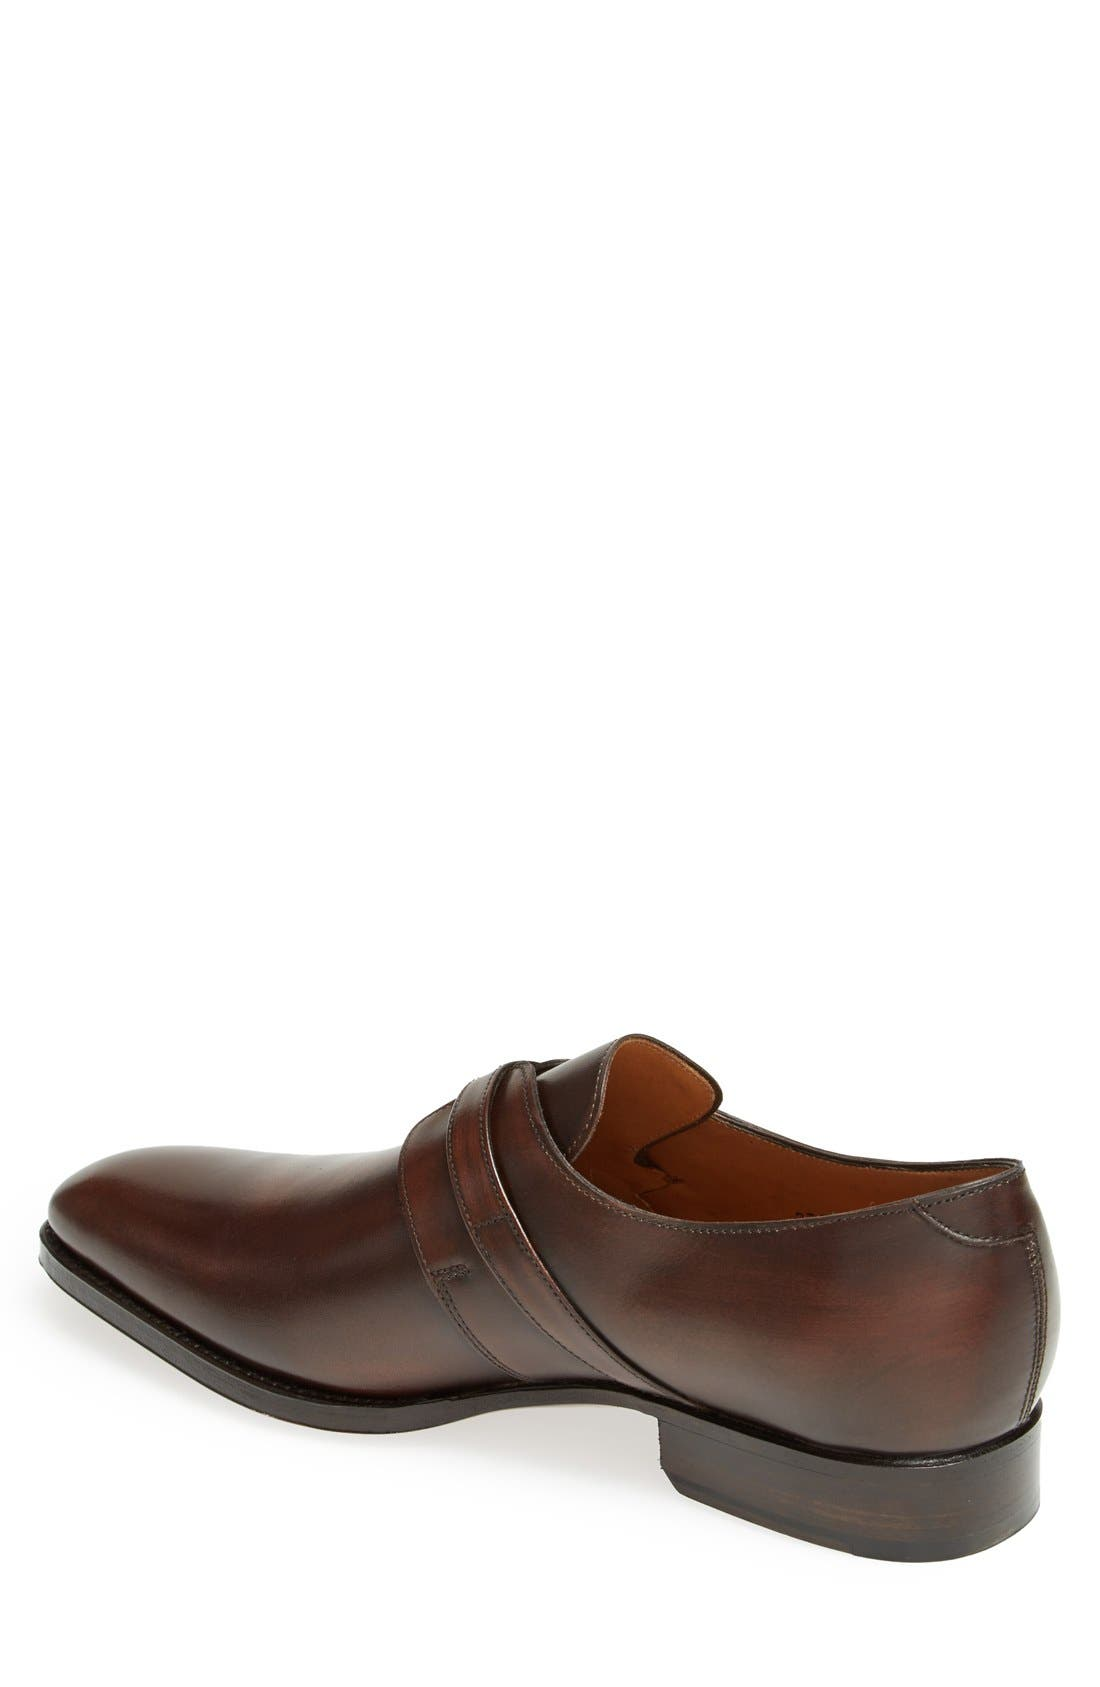 'Galway' Monk Strap Slip-On,                             Alternate thumbnail 6, color,                             211